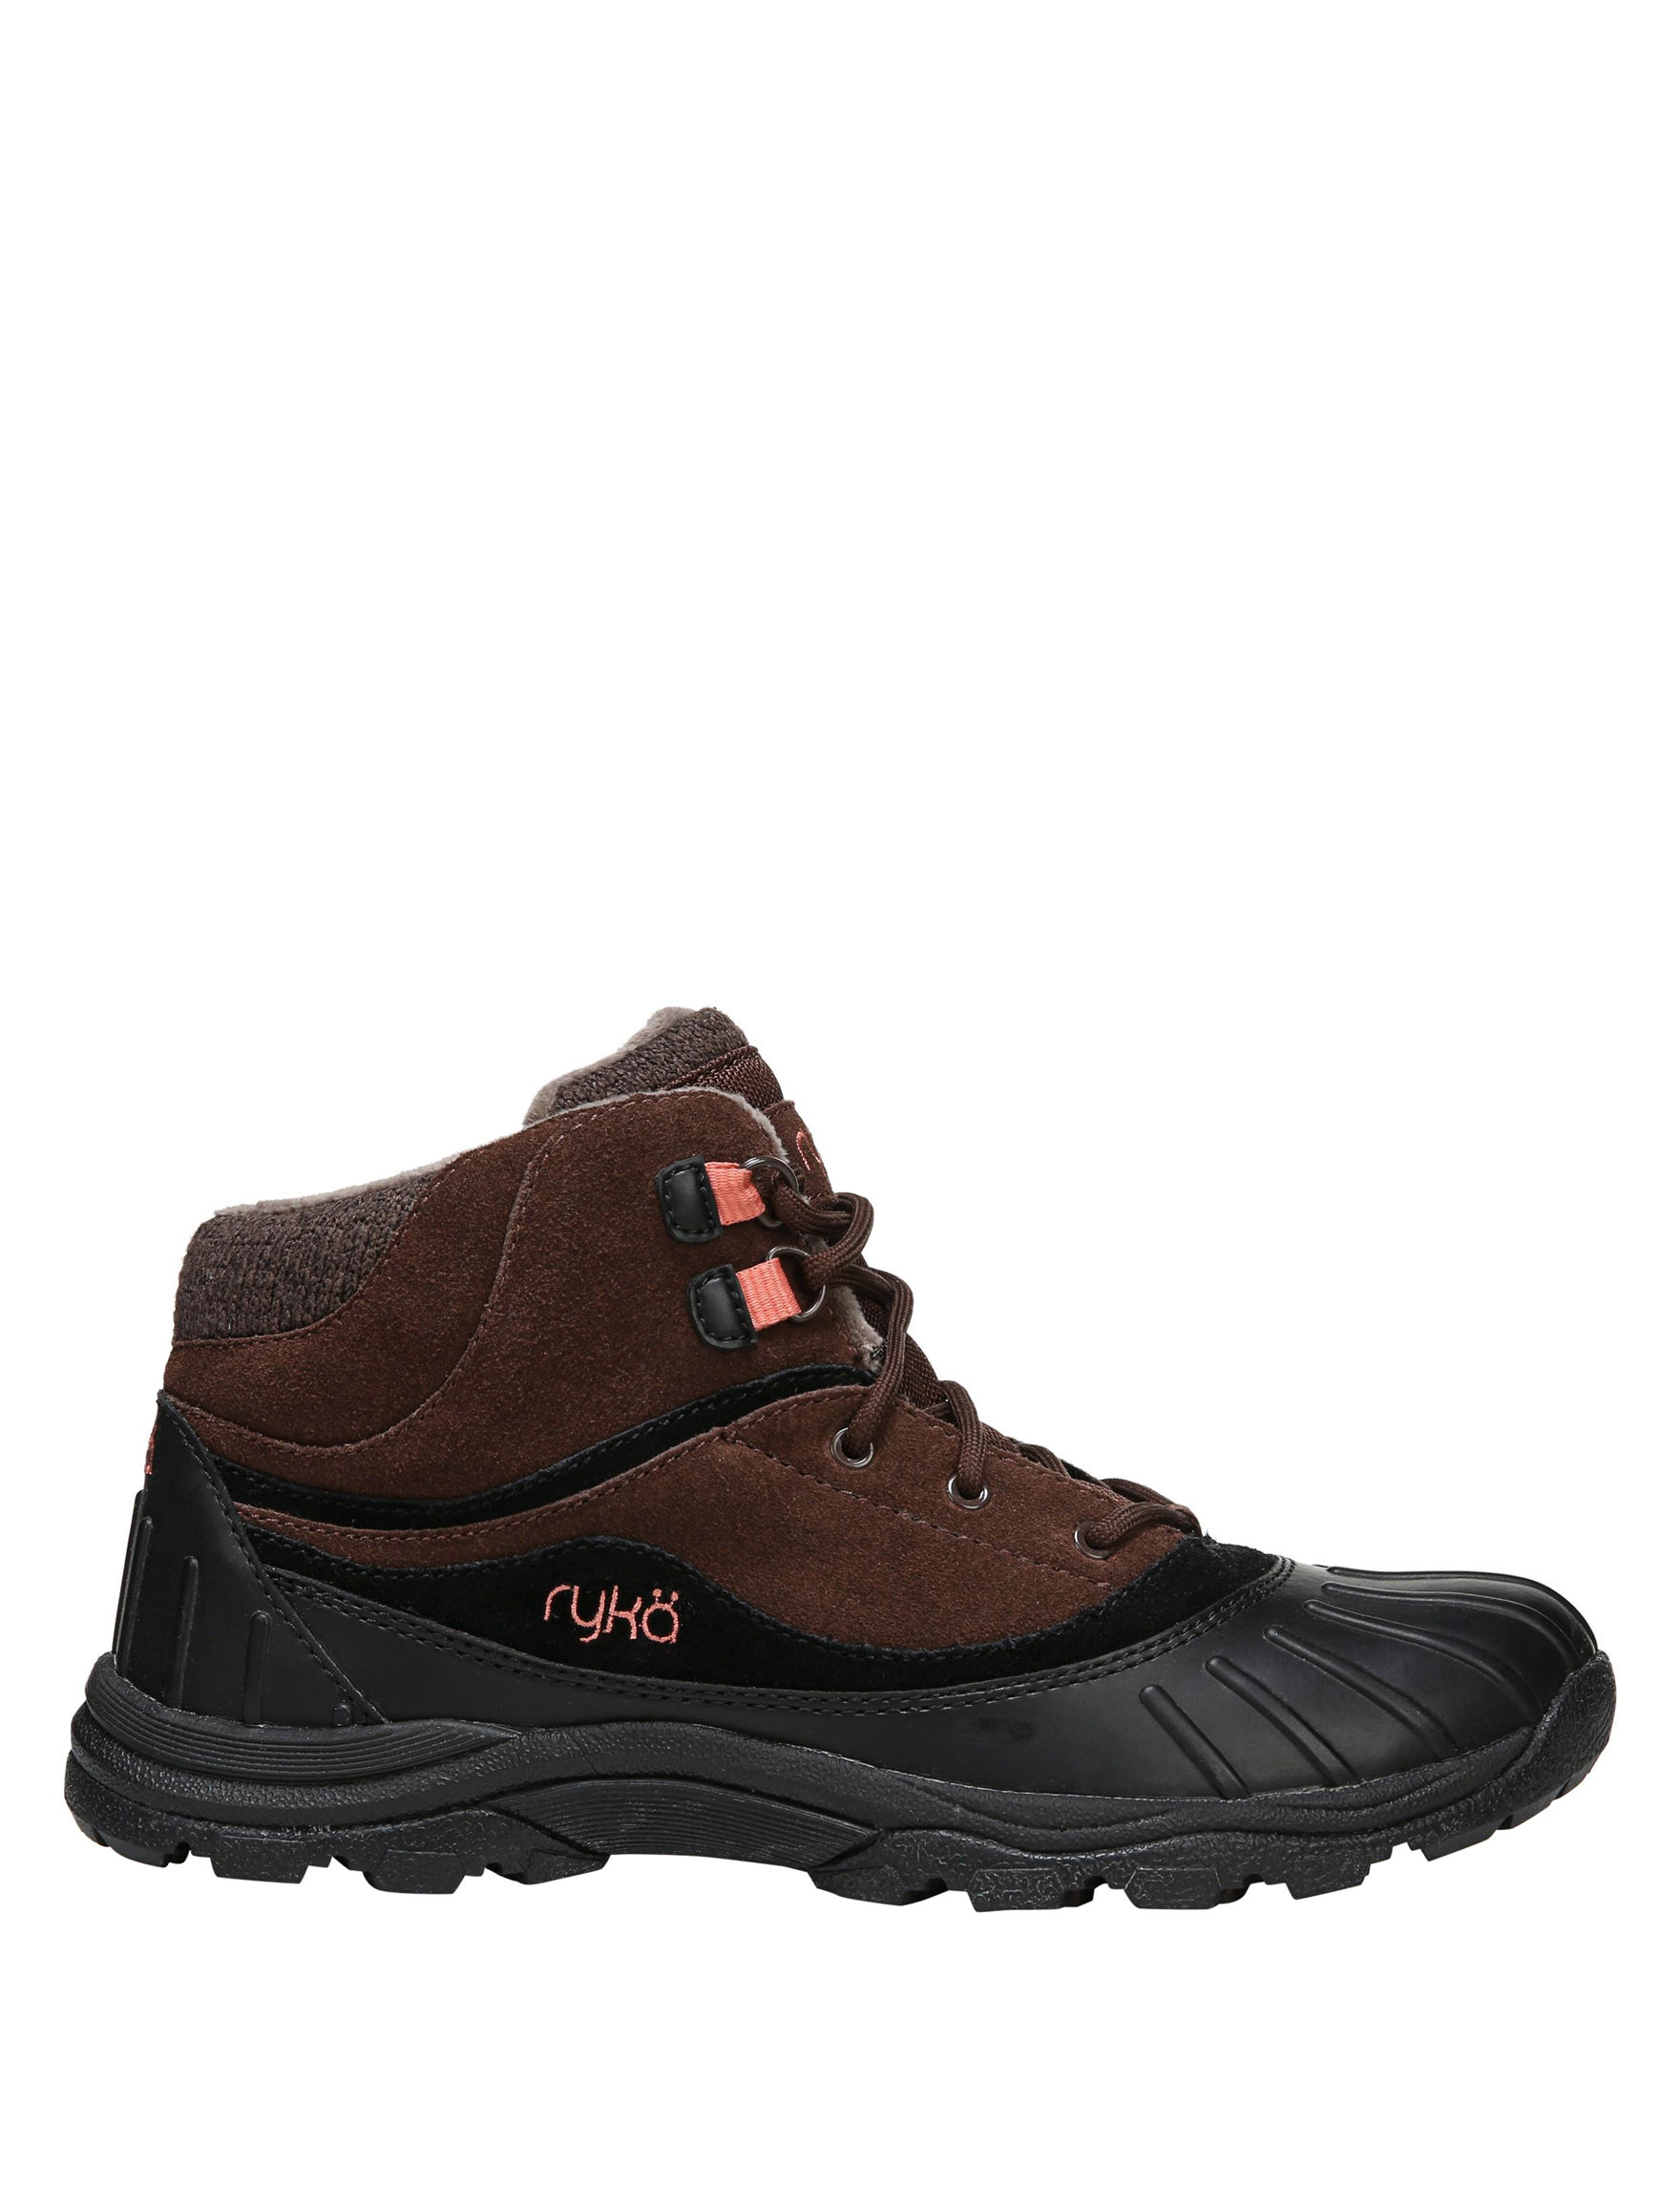 Ryka Brown Multi Hiking Boots Comfort